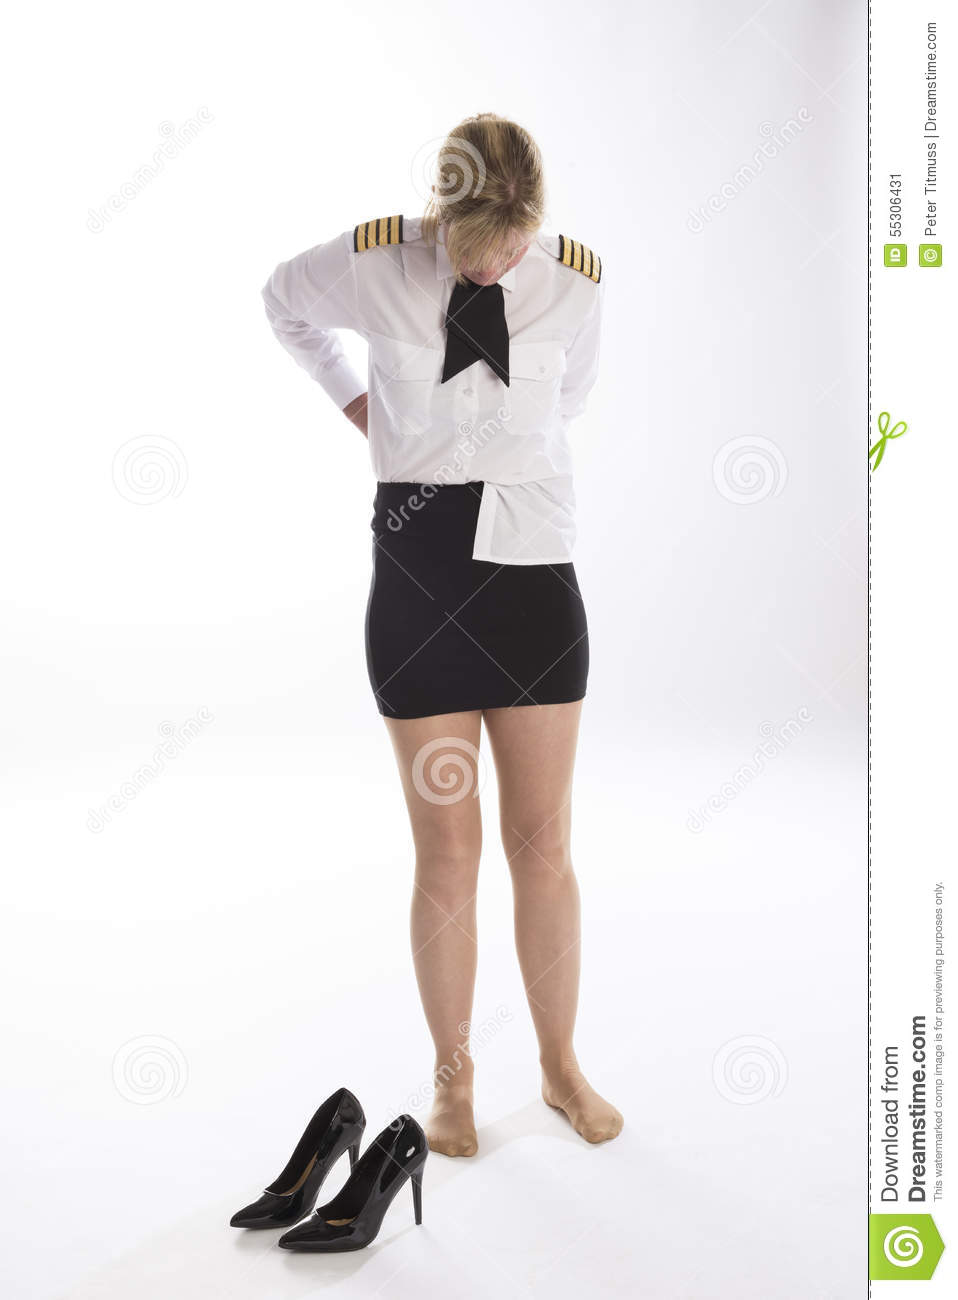 woman tucking in her shirt stock photo image 55306431